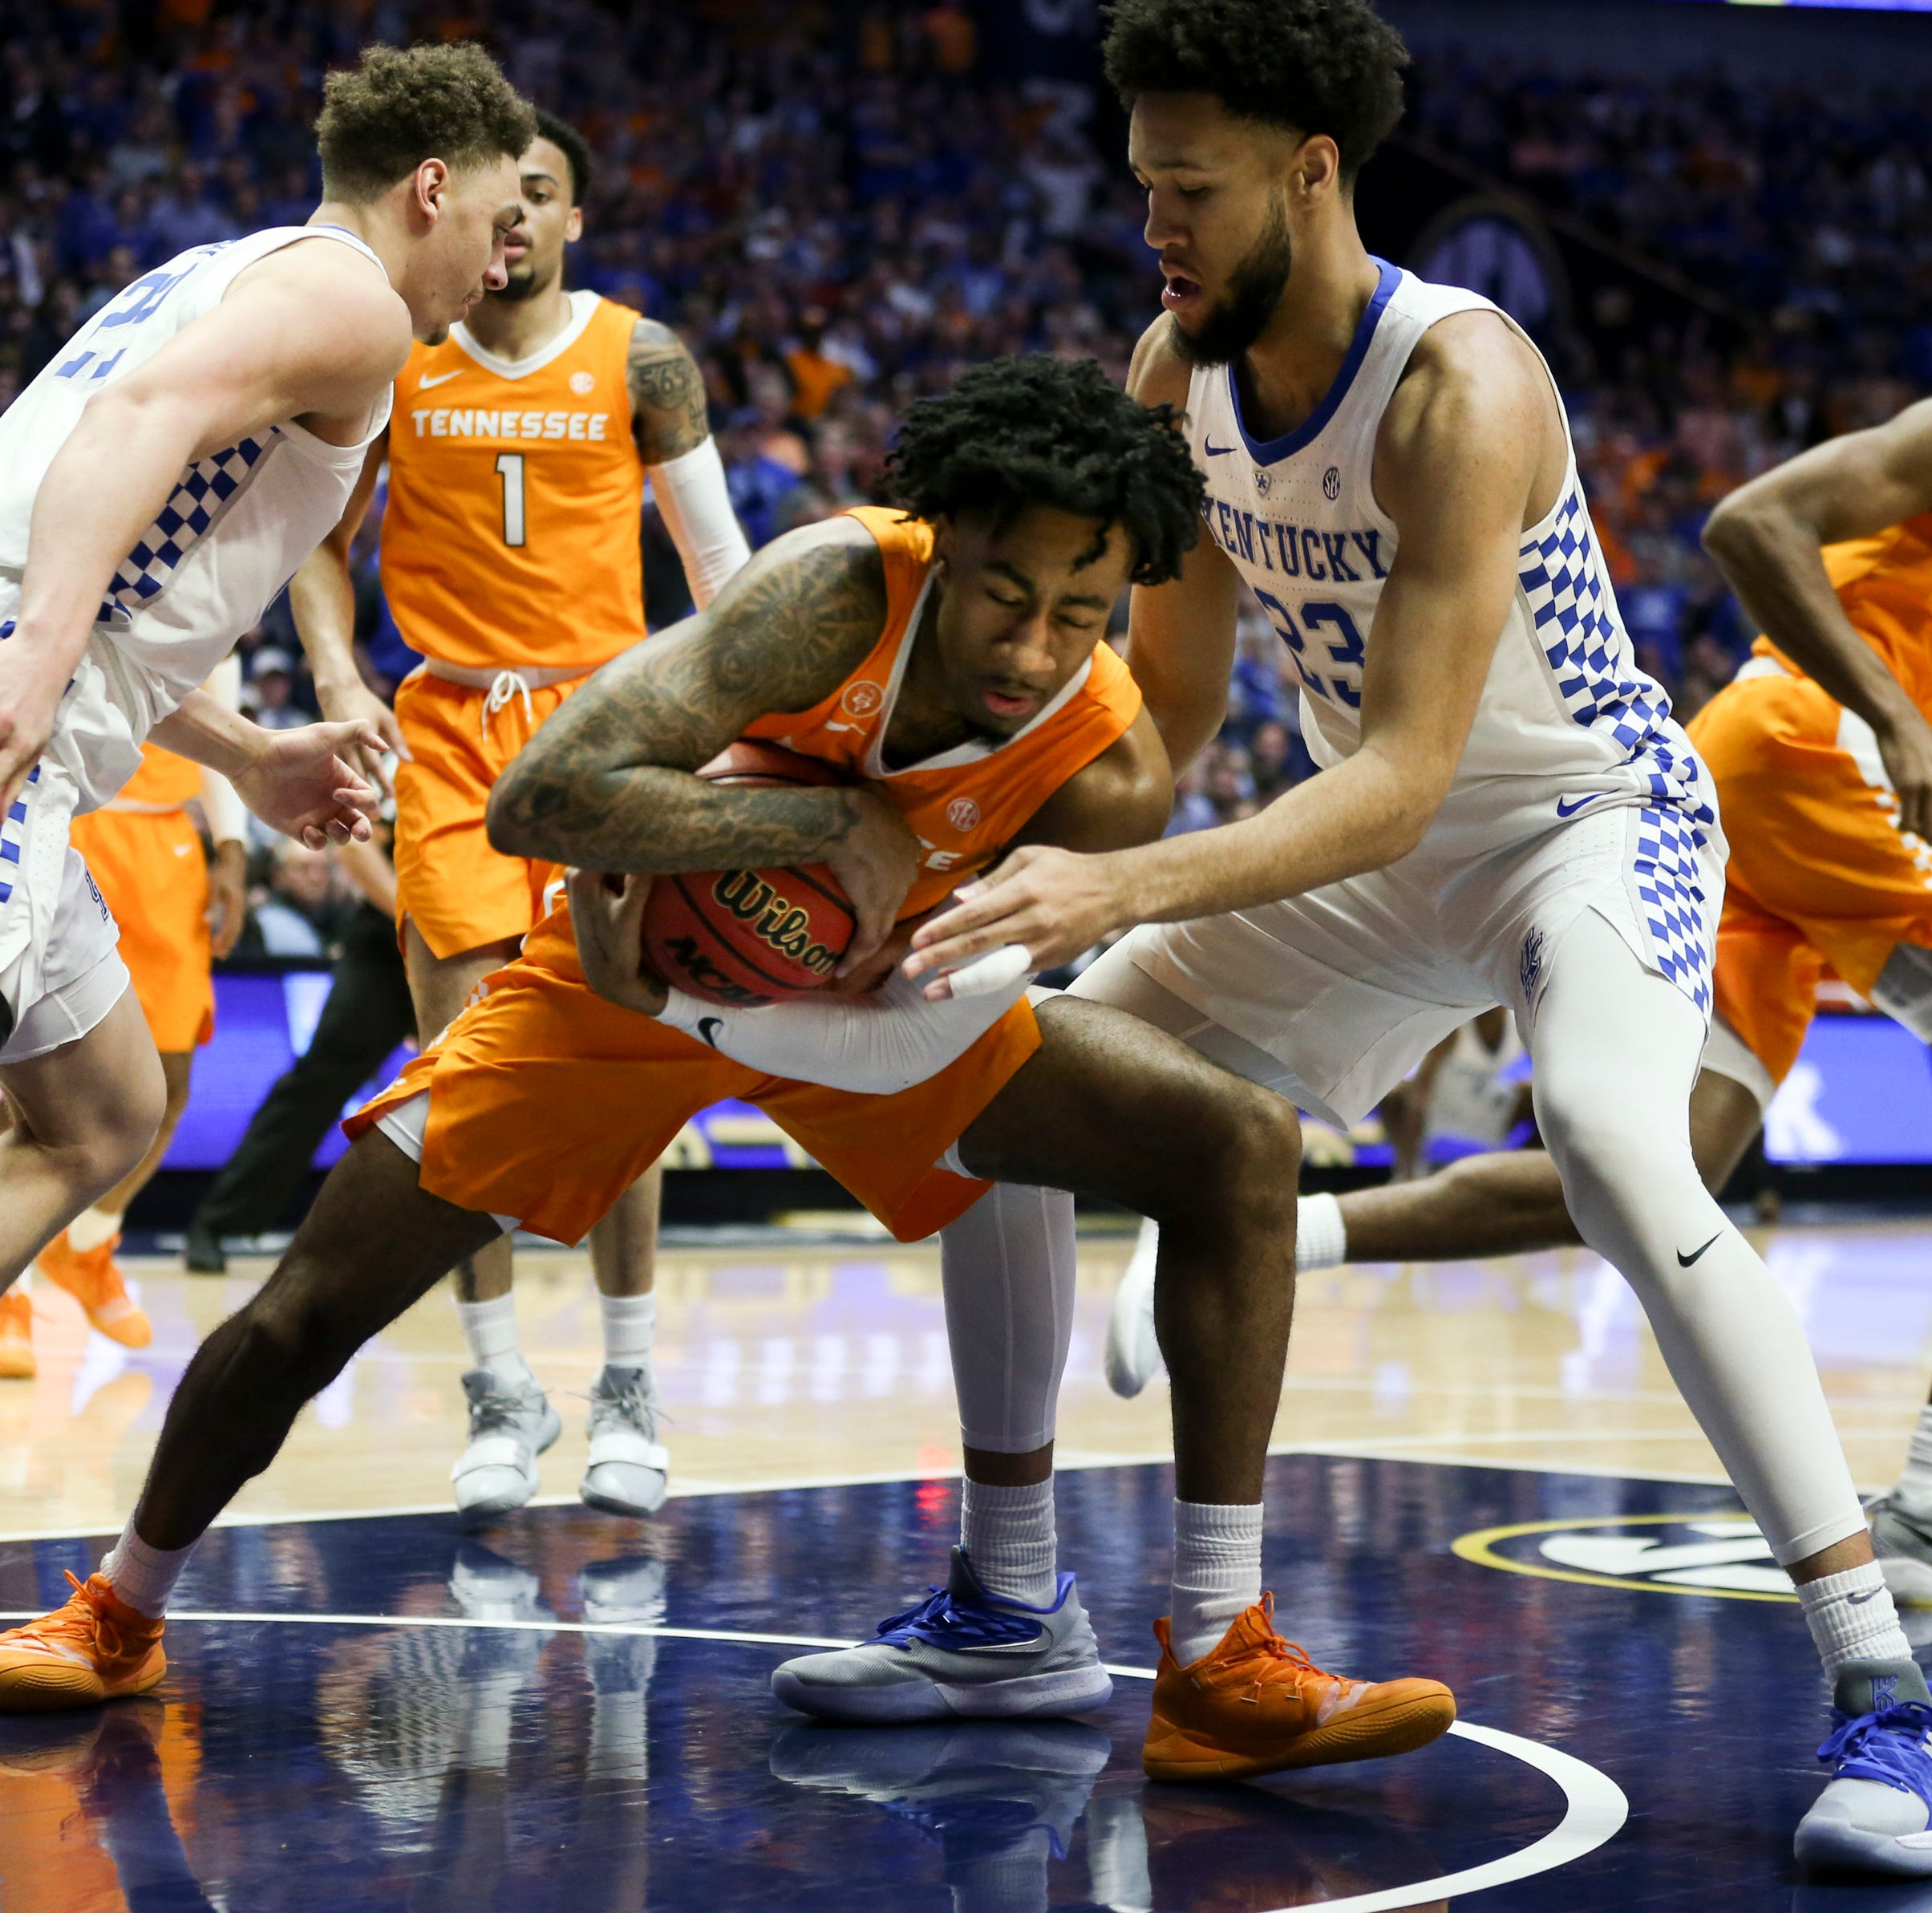 Kentucky eliminated by Tennessee in SEC Tournament semifinals